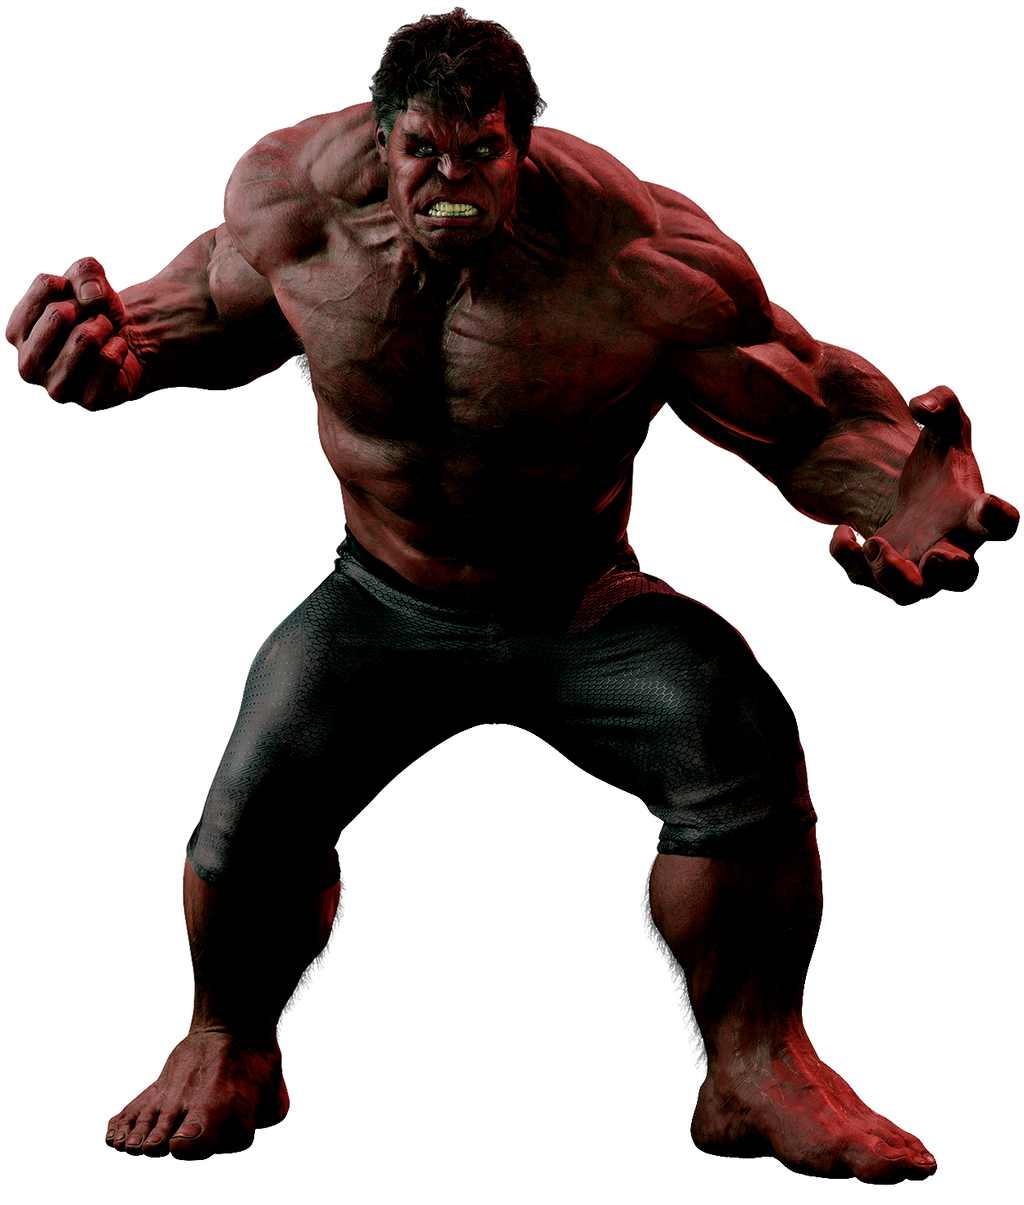 Red Hulk by cptcommunist on DeviantArt